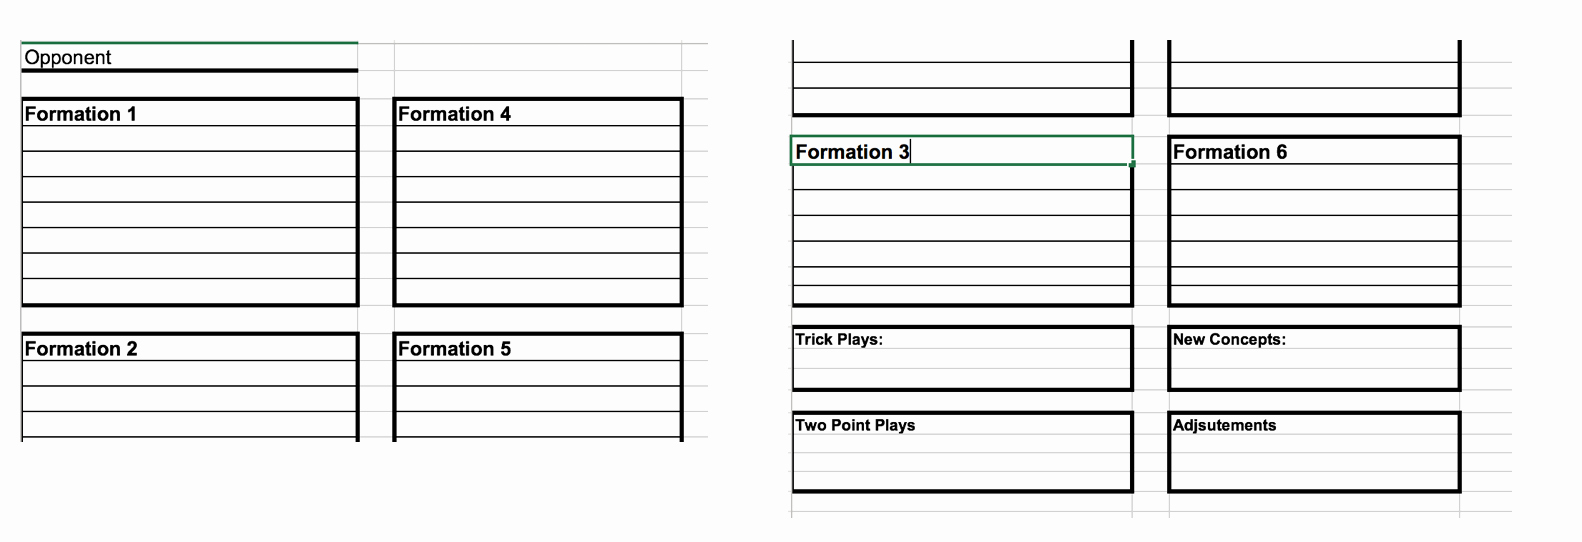 Football Play Call Sheet Template Unique Coach Vint Developing An Fensive Game Plan and Call